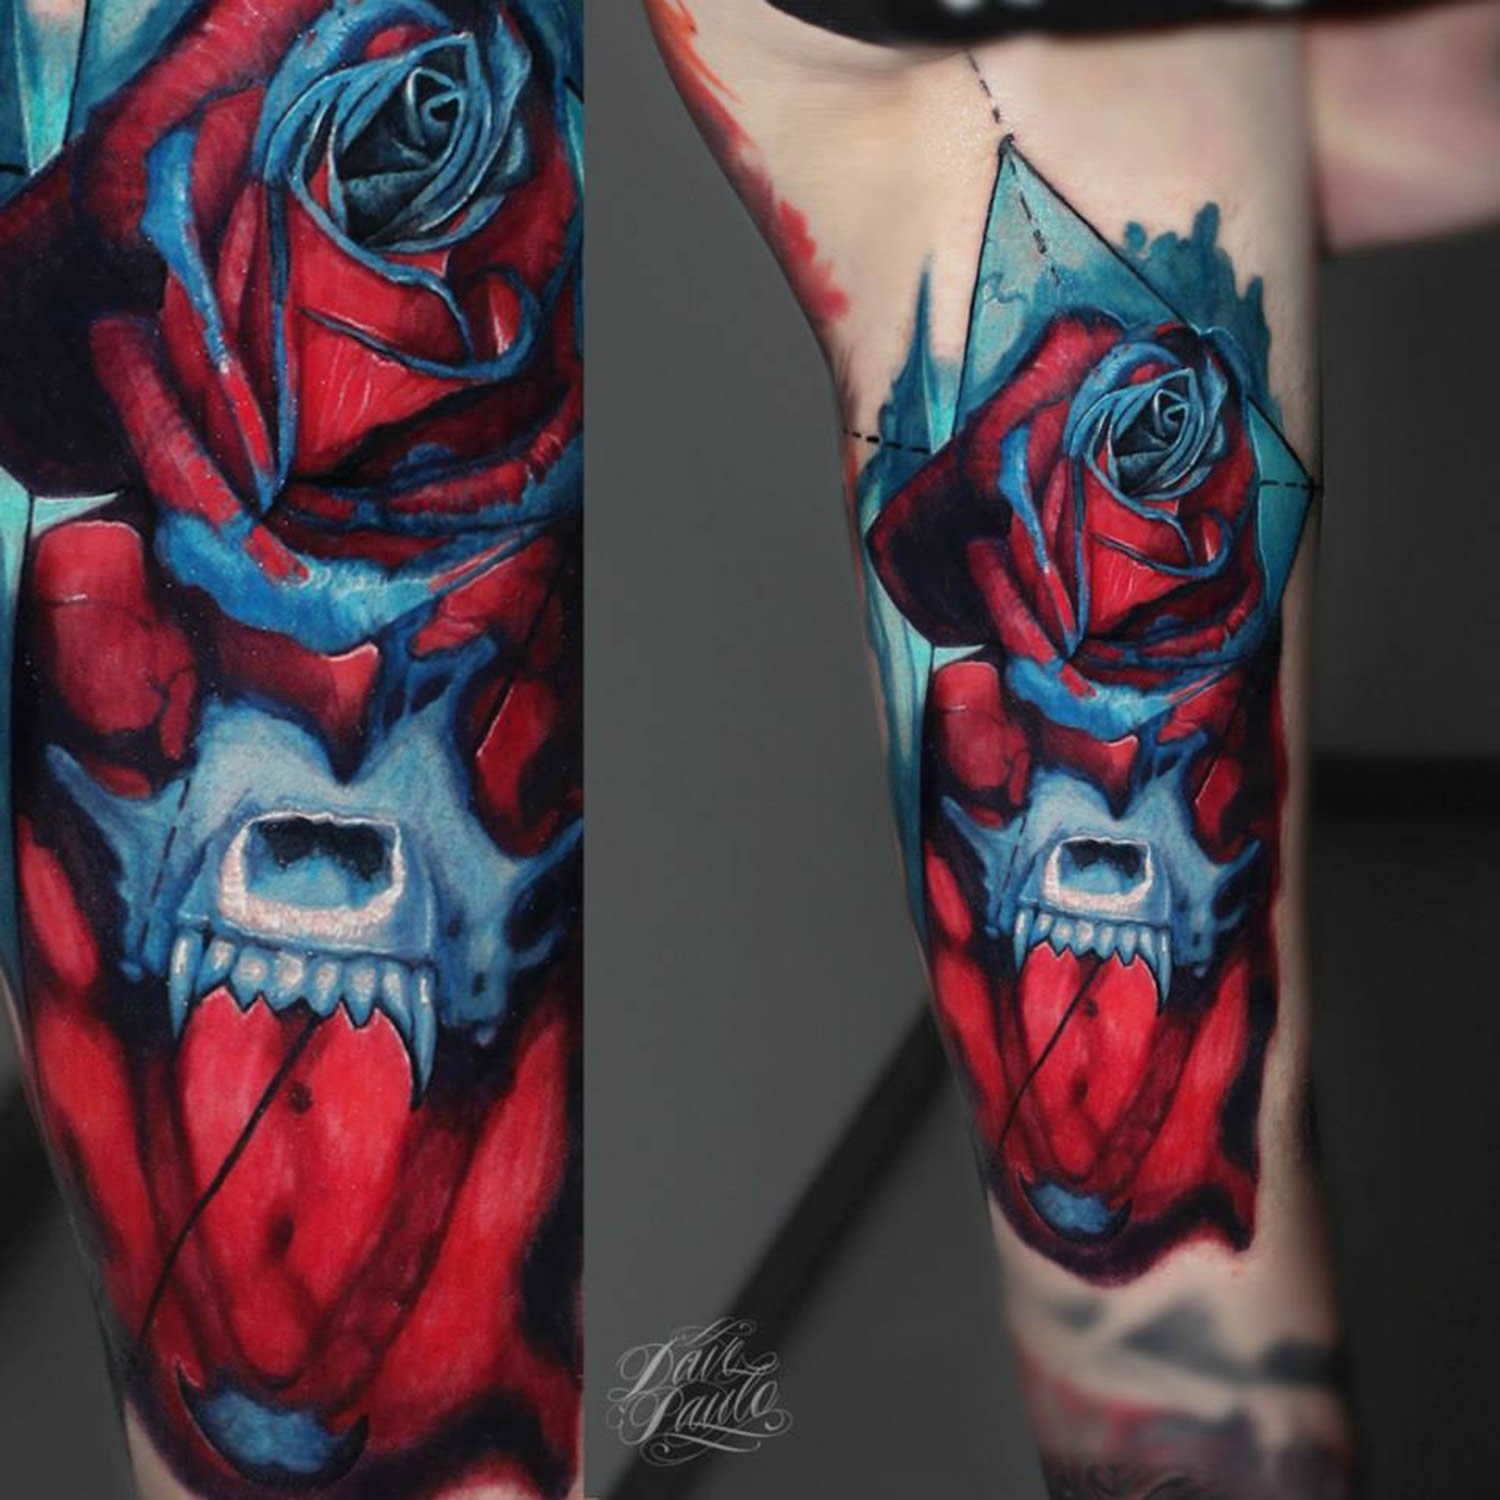 Red and blue roses by Dave Paulo